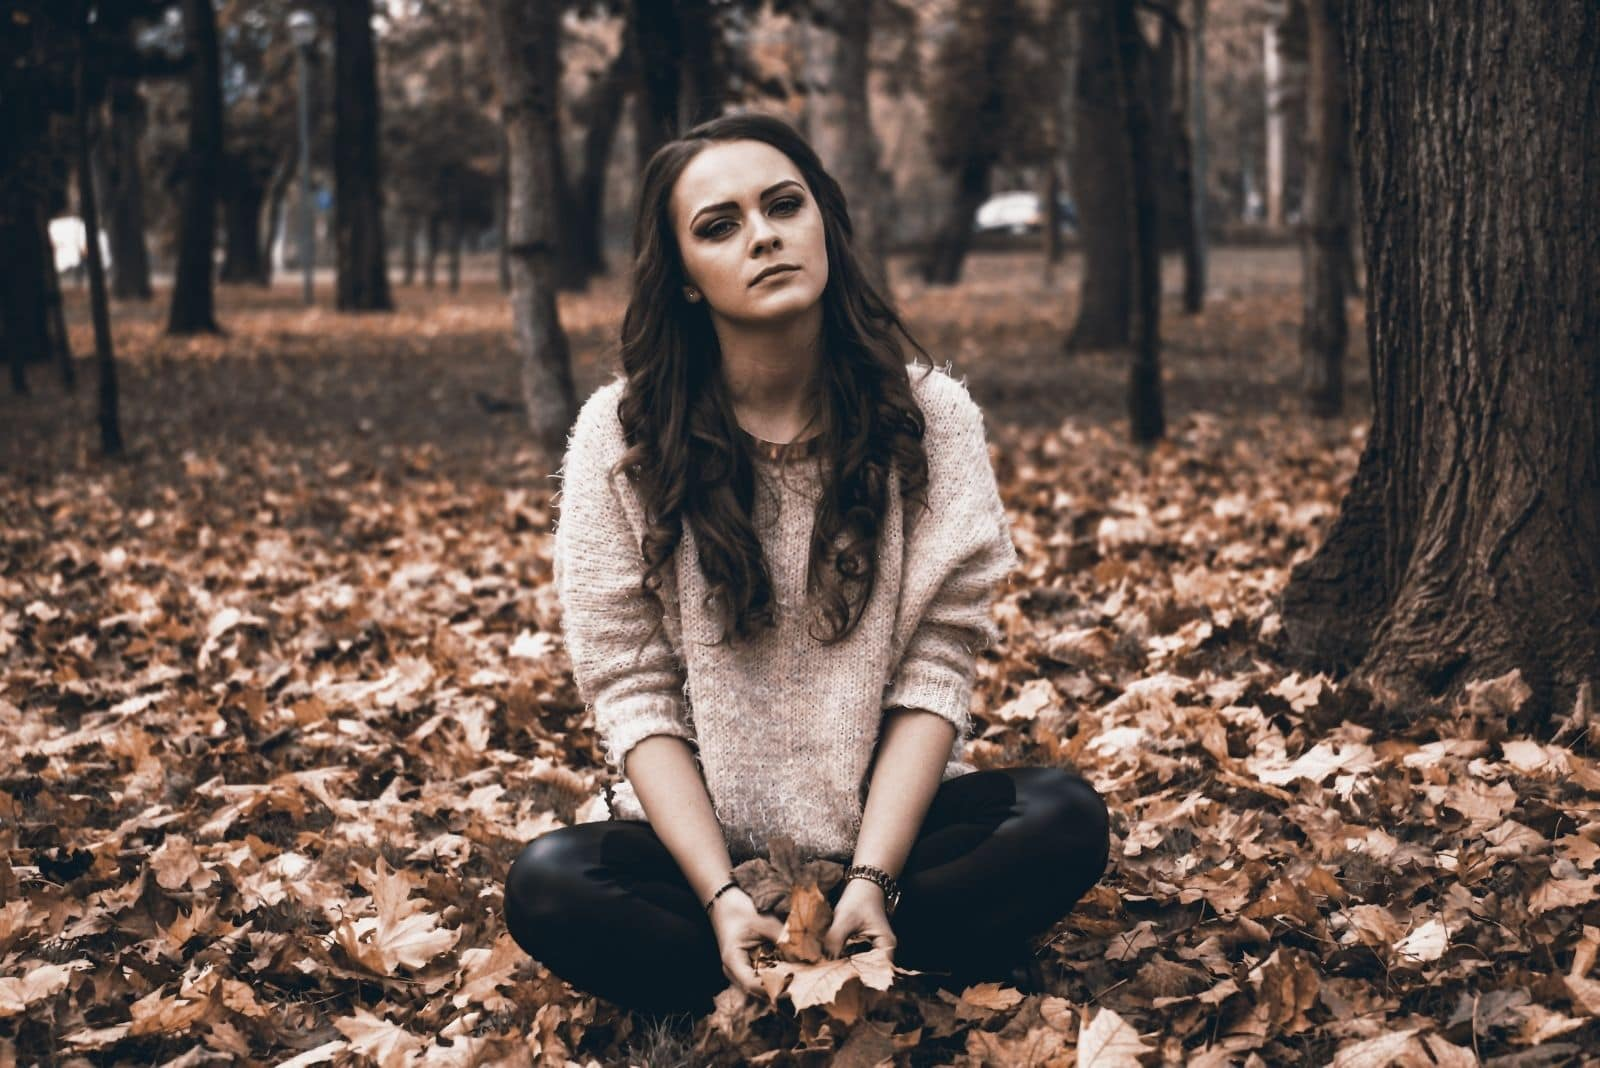 woman sitting on autumn folliage looking sad and alone